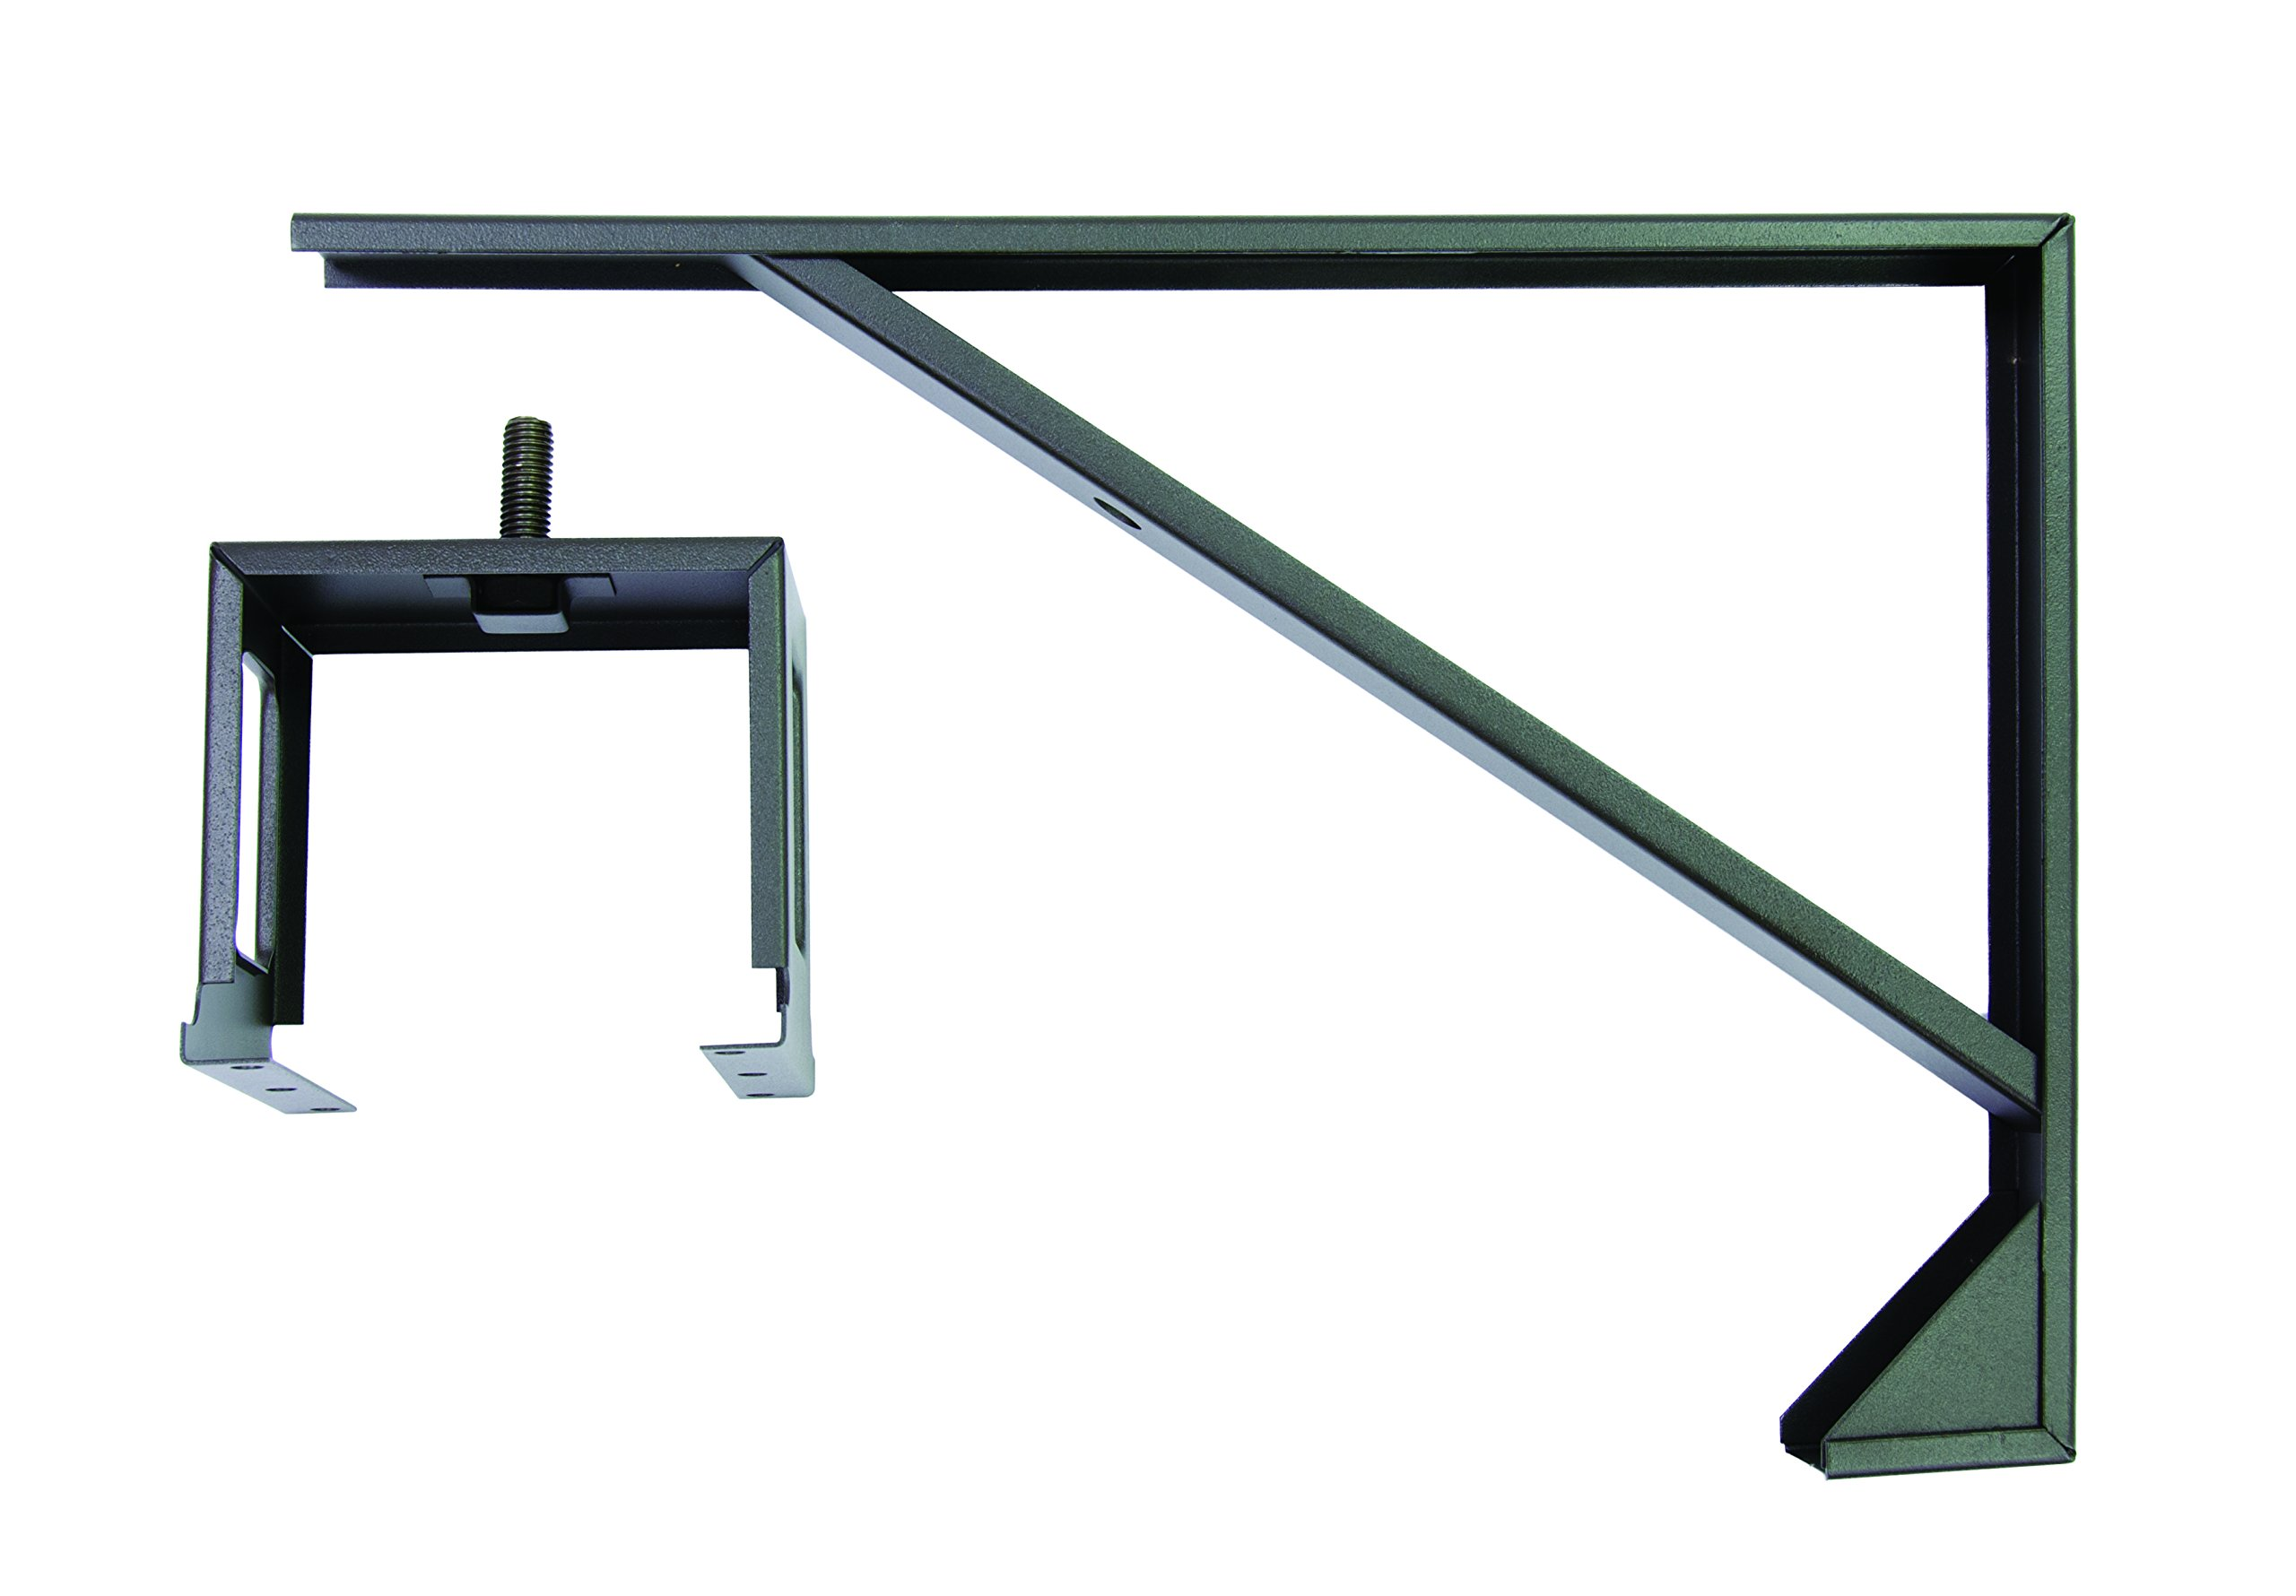 TPI Corporation A5105 Mounting Bracket, Used With 5100 Series Heater Units, 3.3 to 5kW Heaters